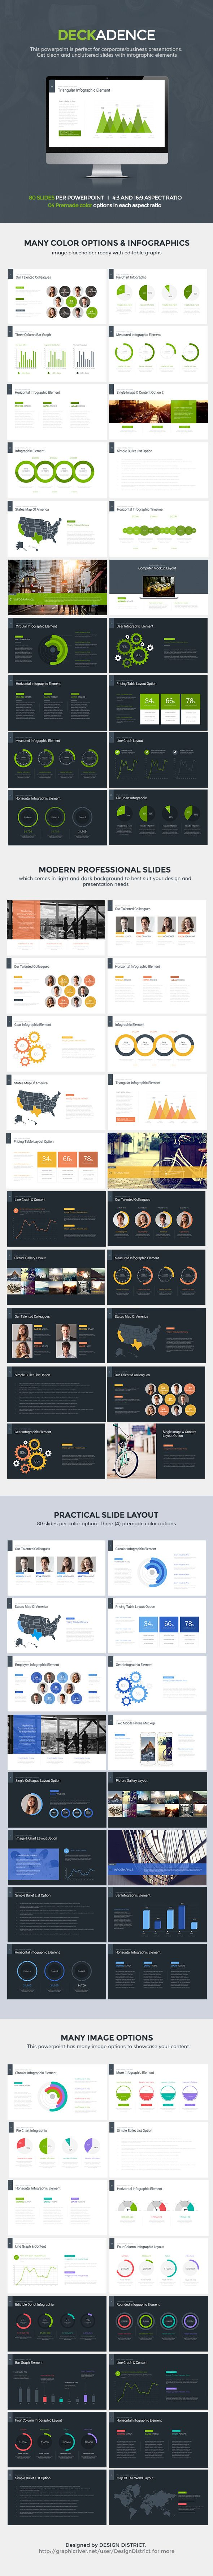 Decker Powerpoint Template PowerPoint Template / Theme / Presentation / Slides / Background / Power Point #powerpoint #template #theme